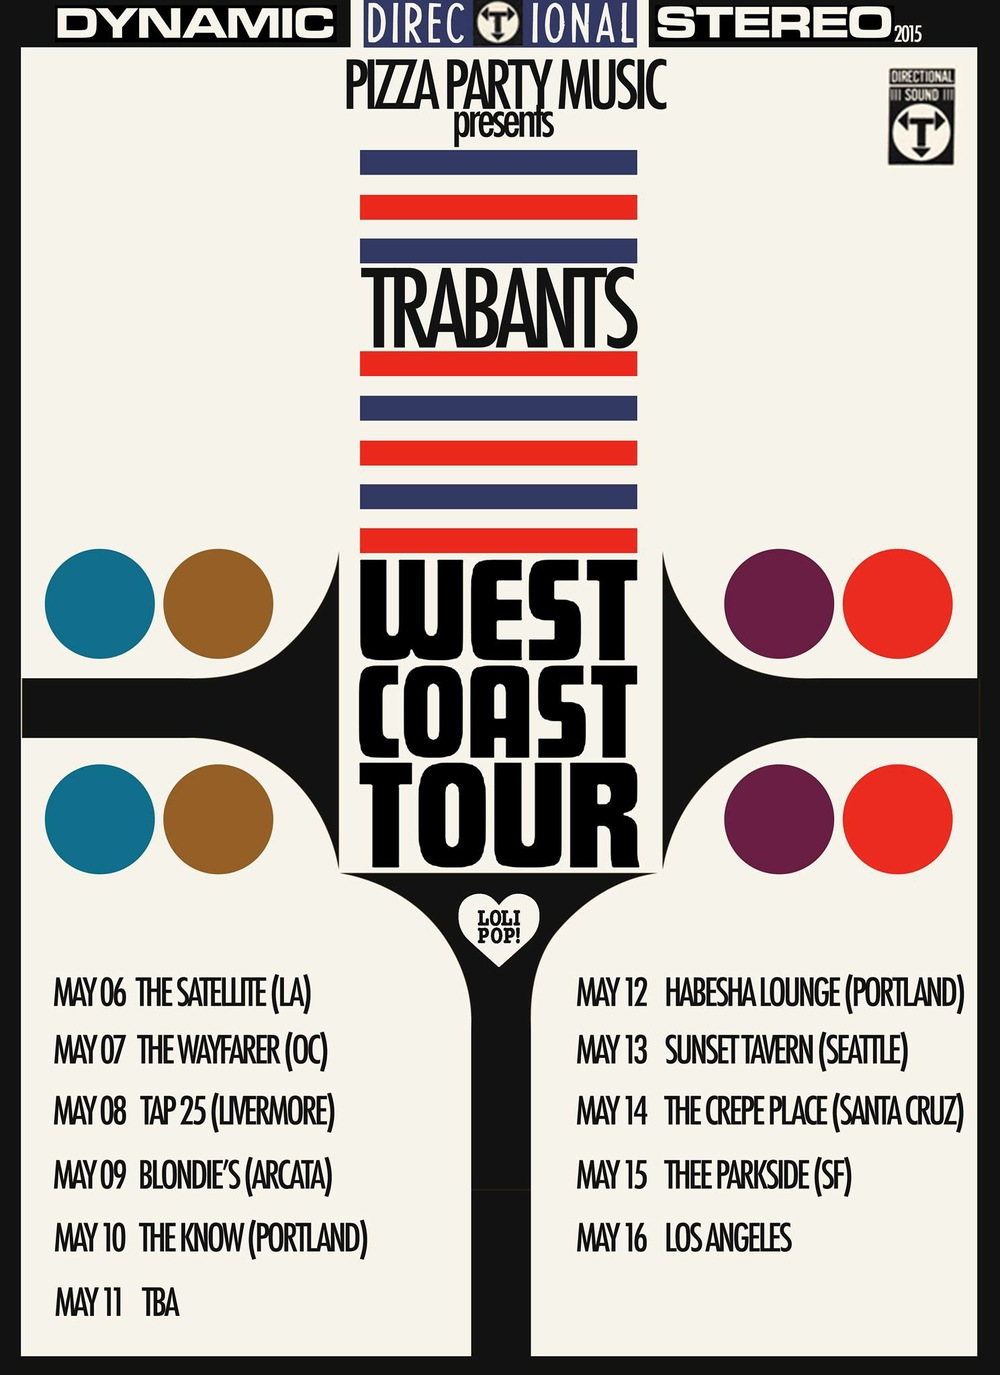 Trabants west coast tour flier.JPG